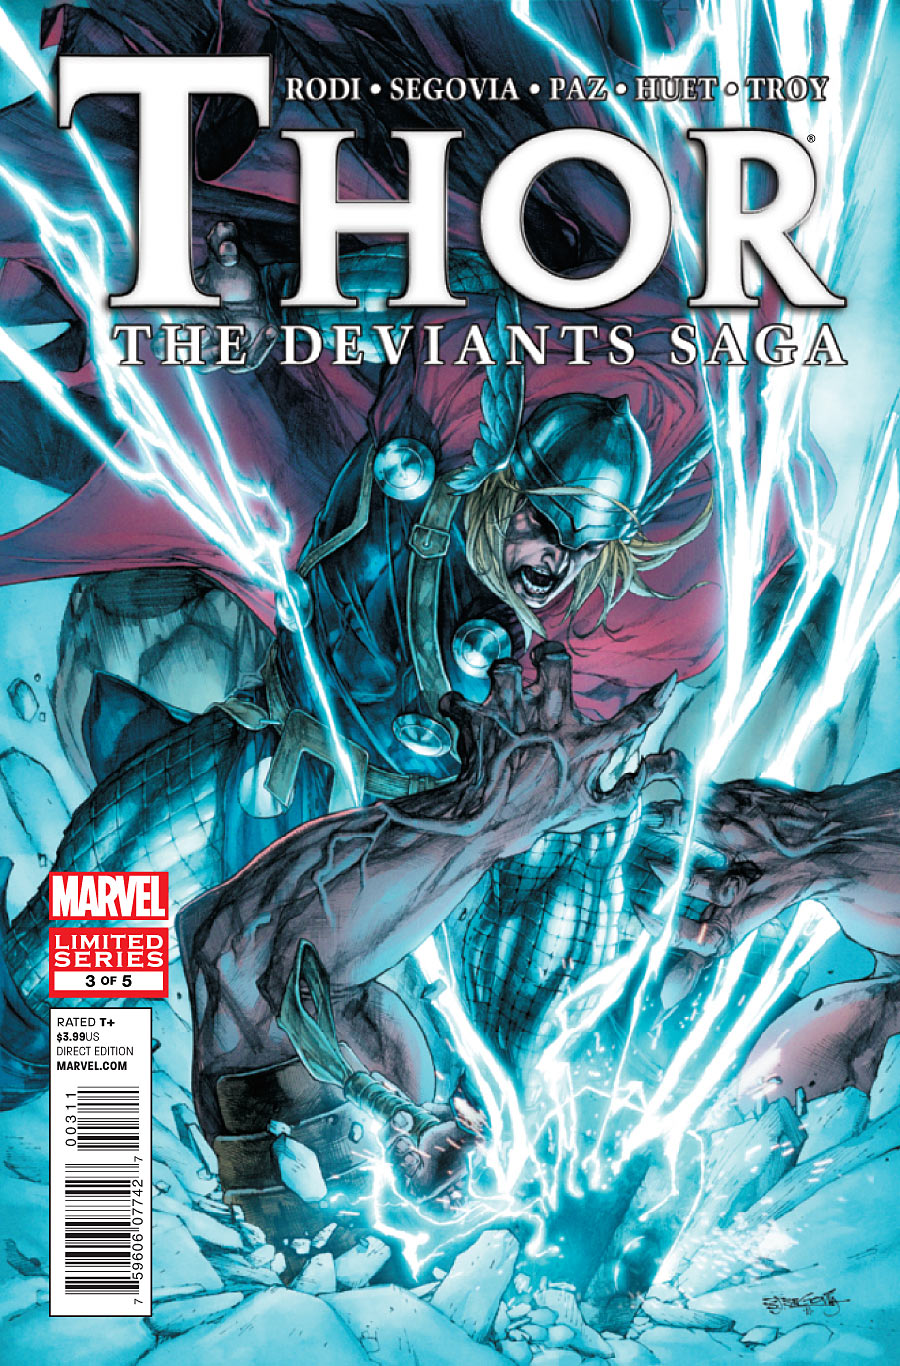 Thor: The Deviants Saga Vol 1 3